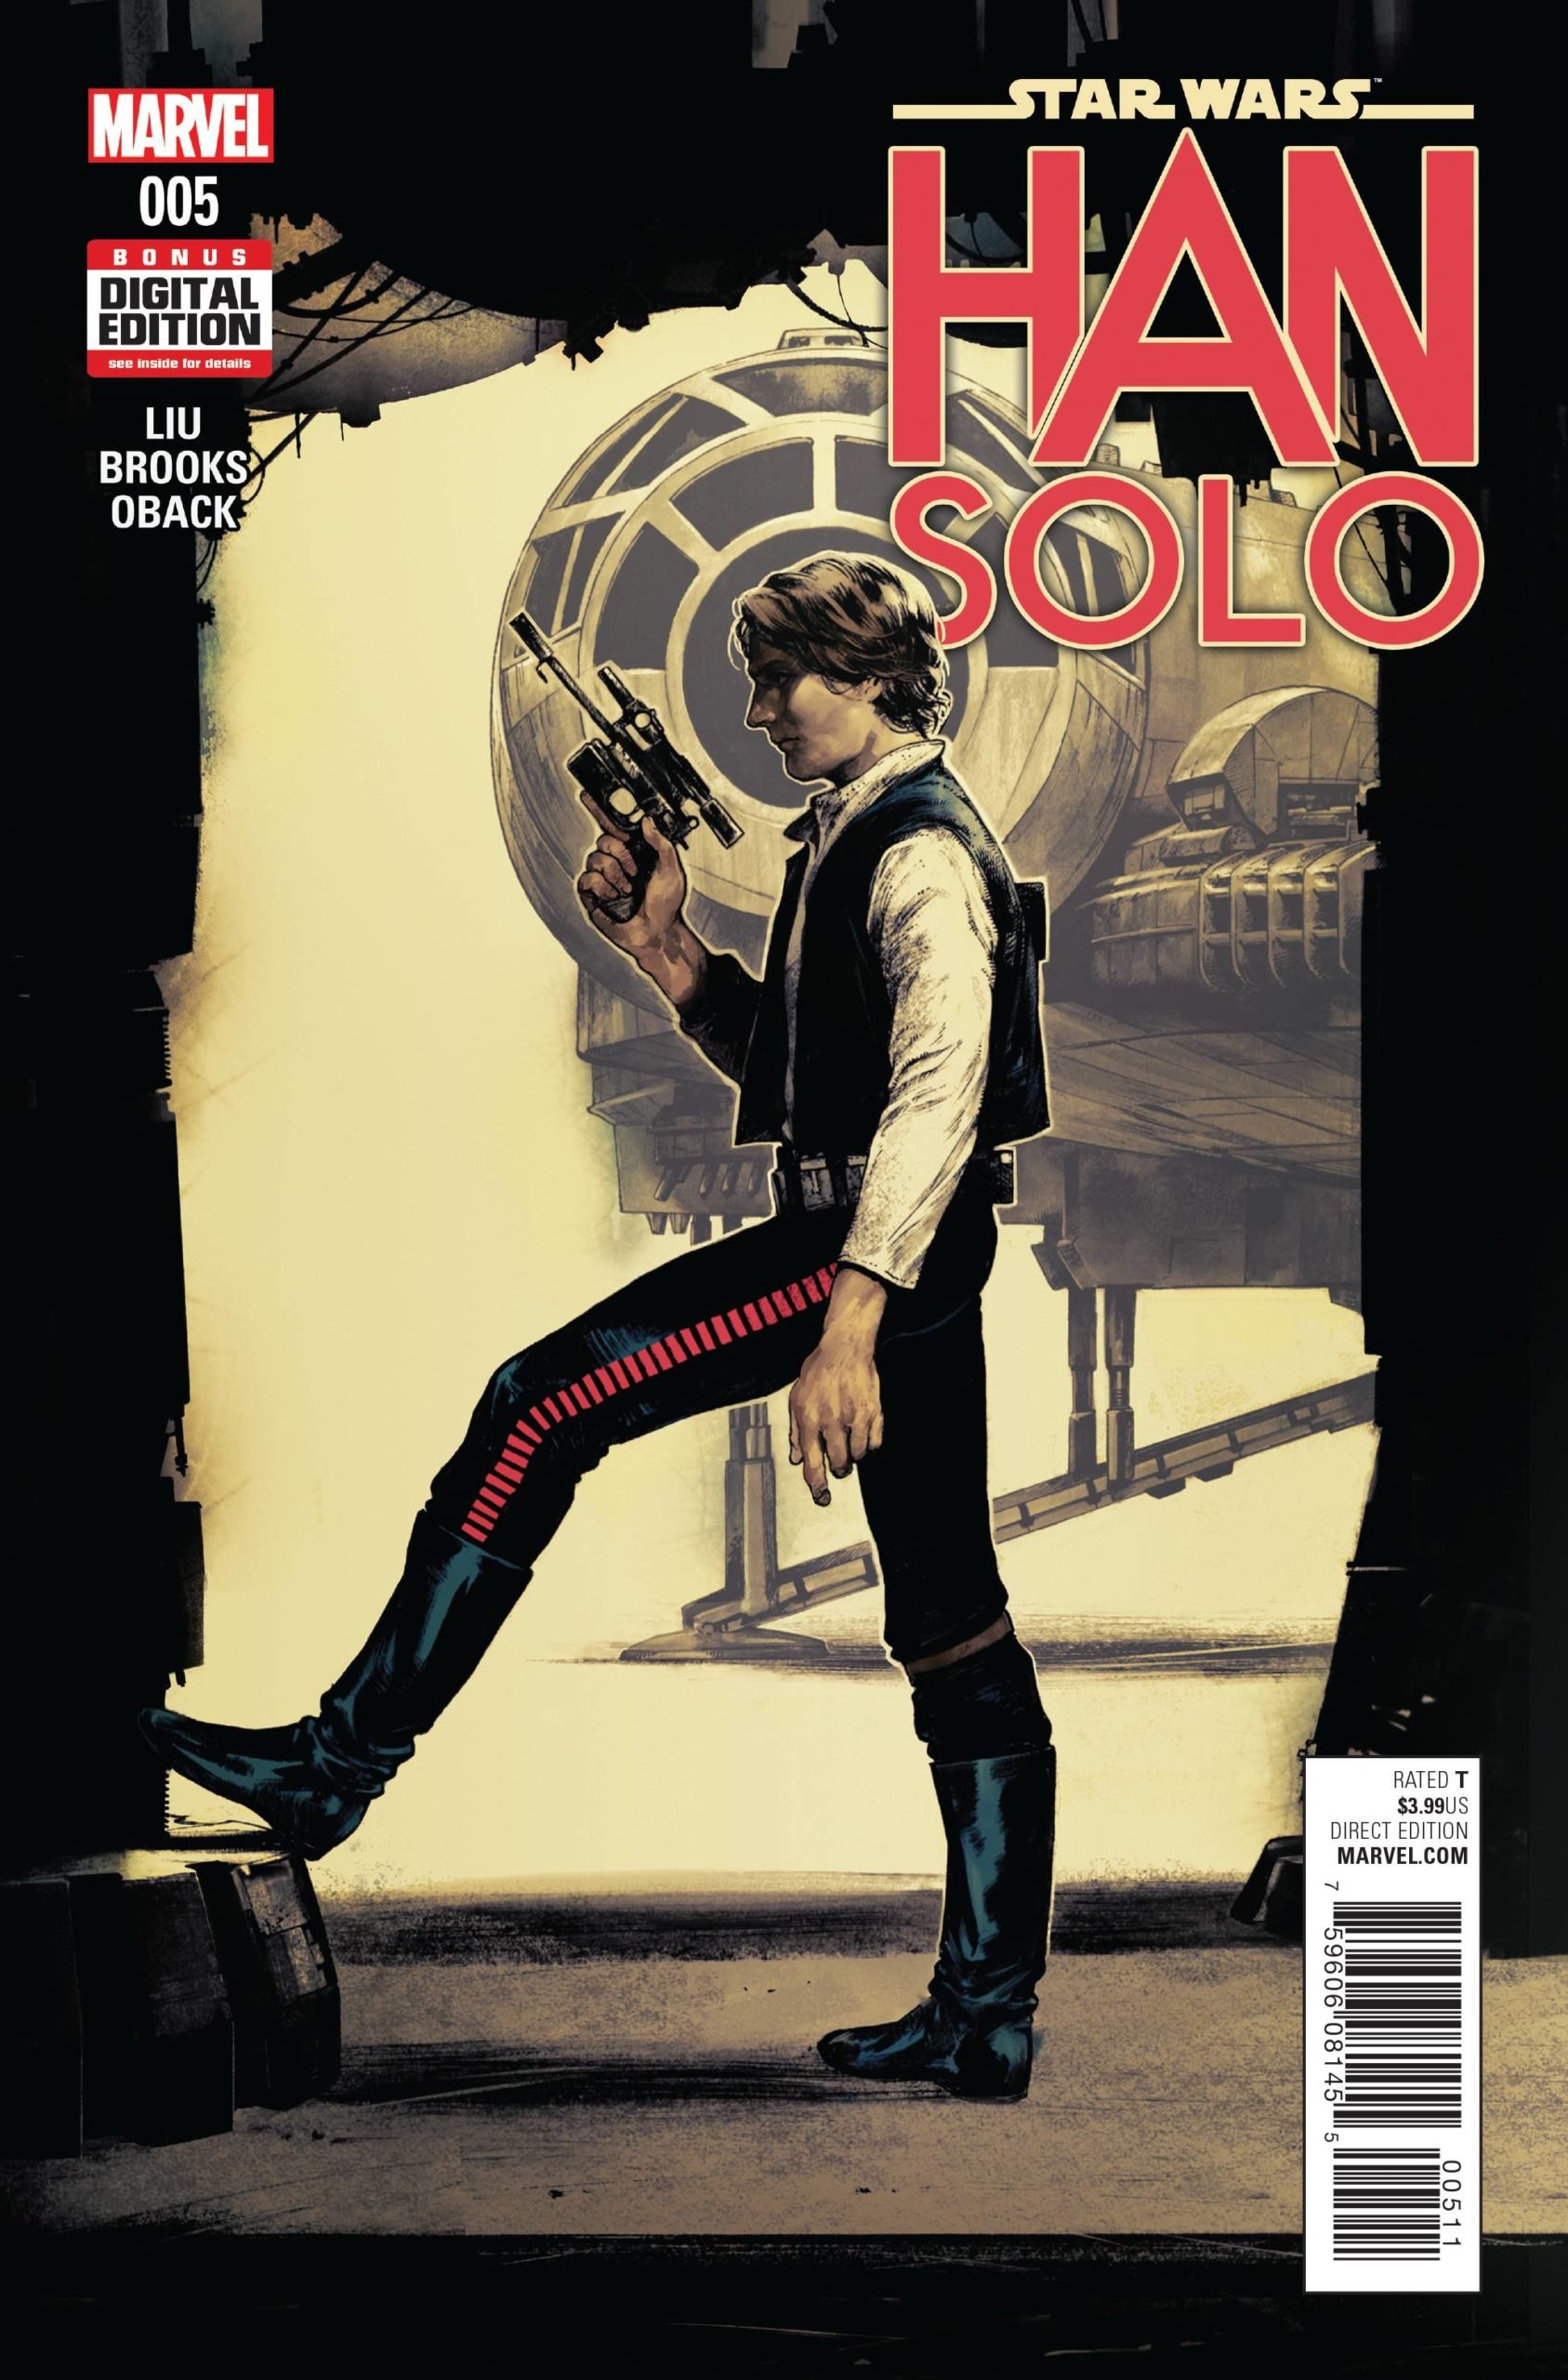 STAR WARS HAN SOLO (MS 5)